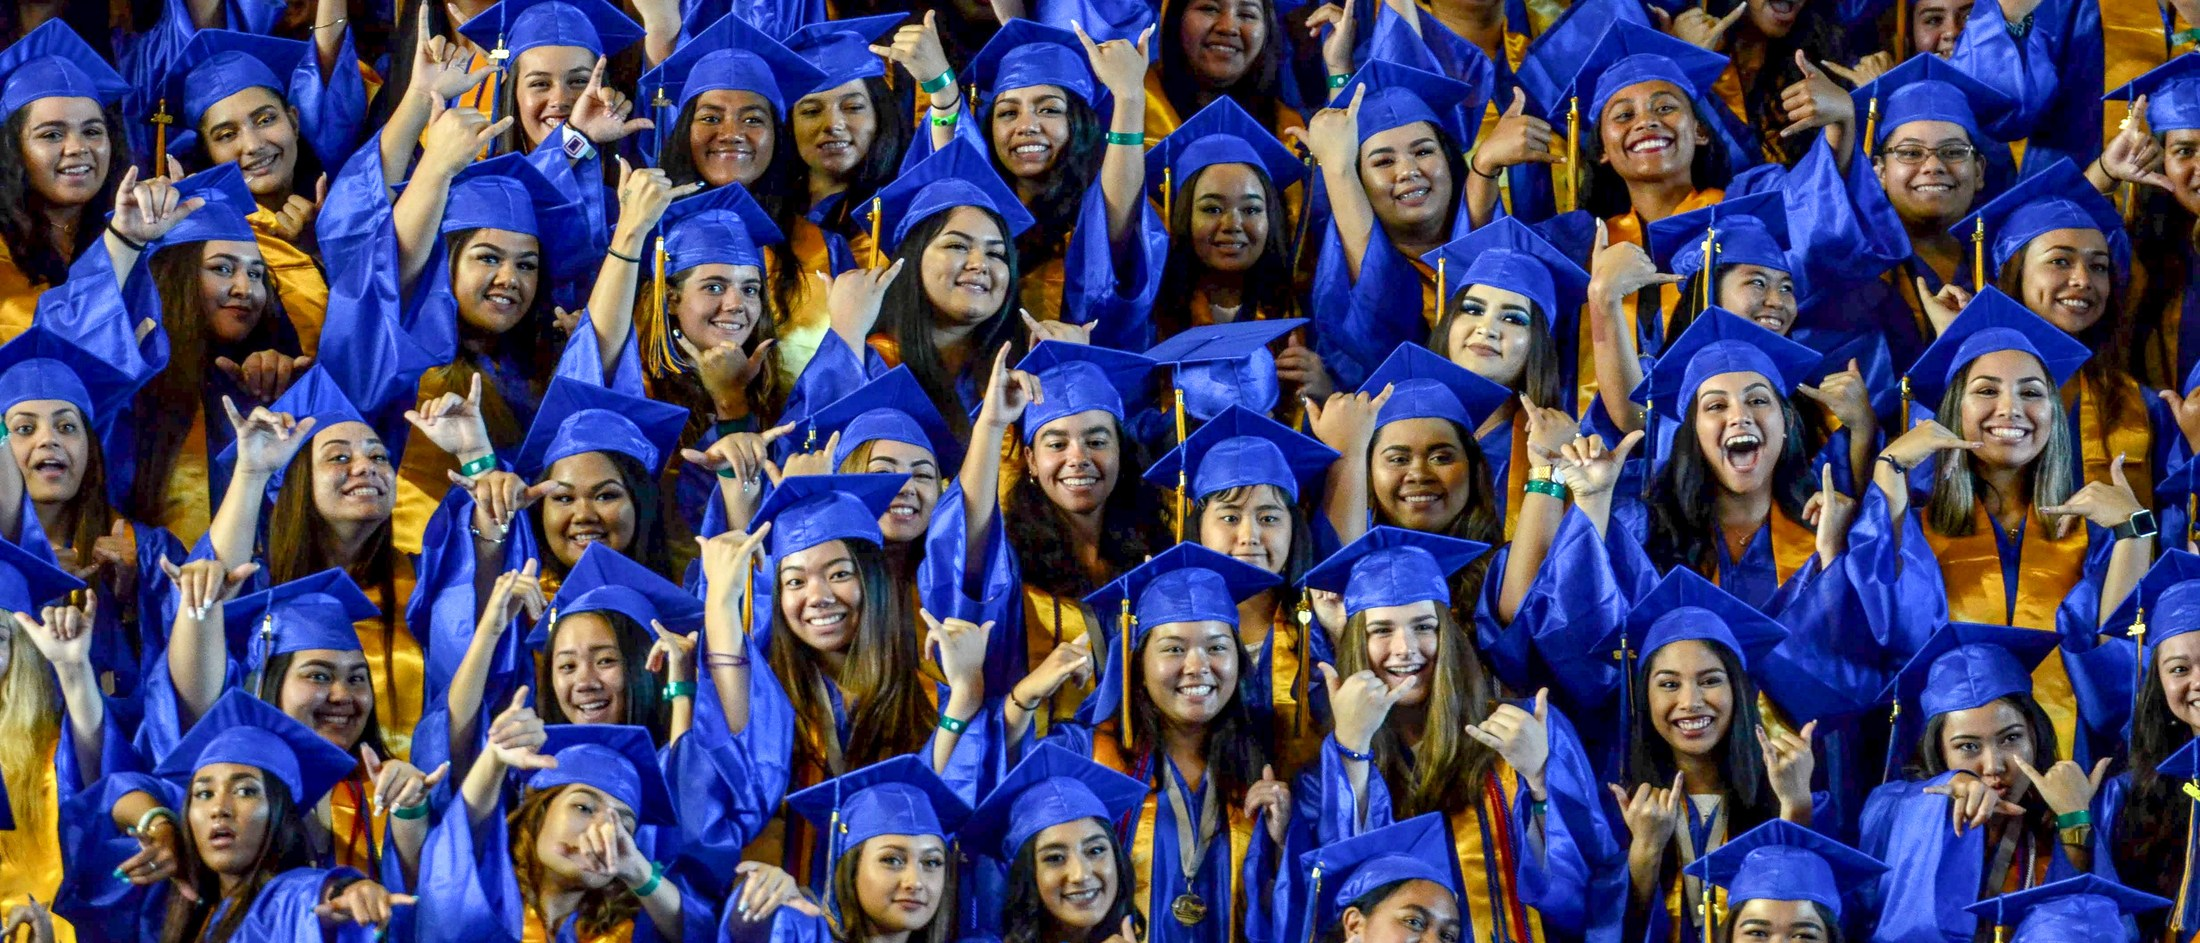 Class of 2018 Commencement - Information - Hilo High School